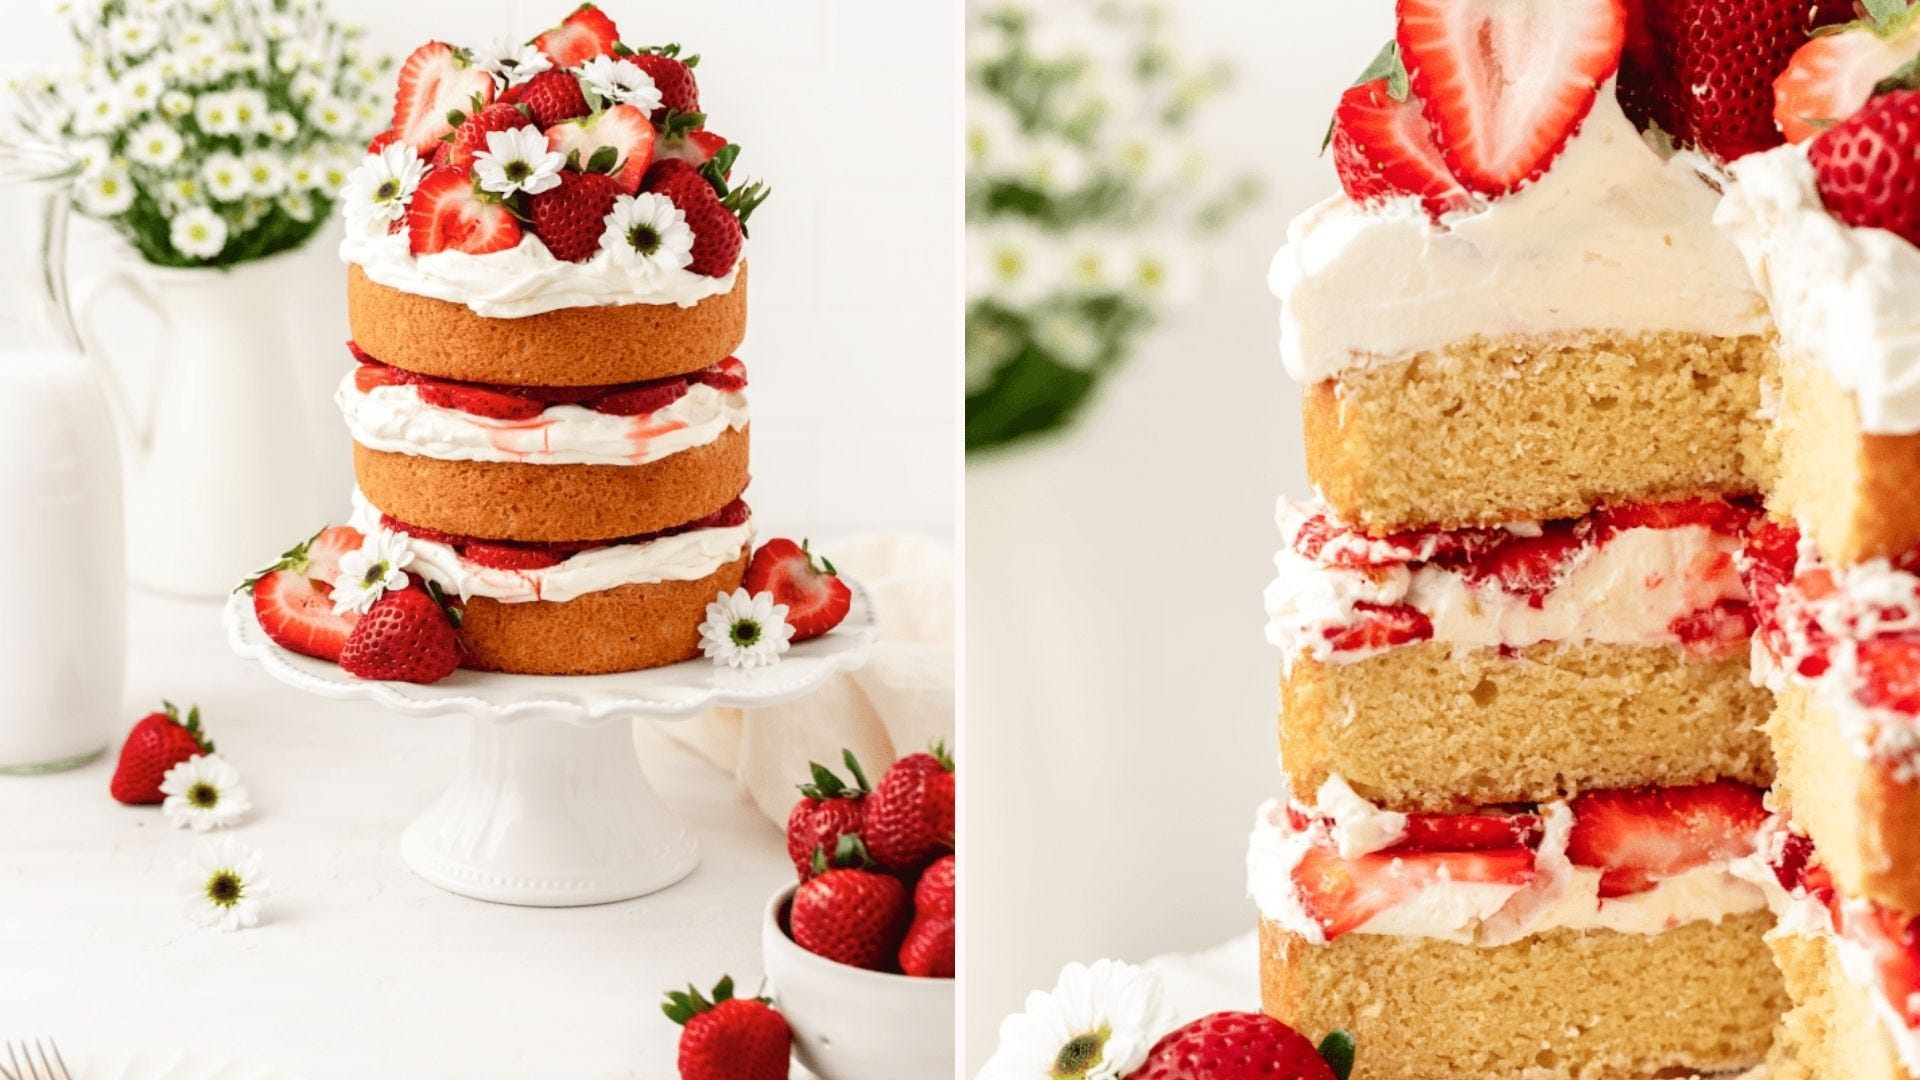 A strawberries and cream naked cake on a cake plate; closeup of the same cake with a slice cut out